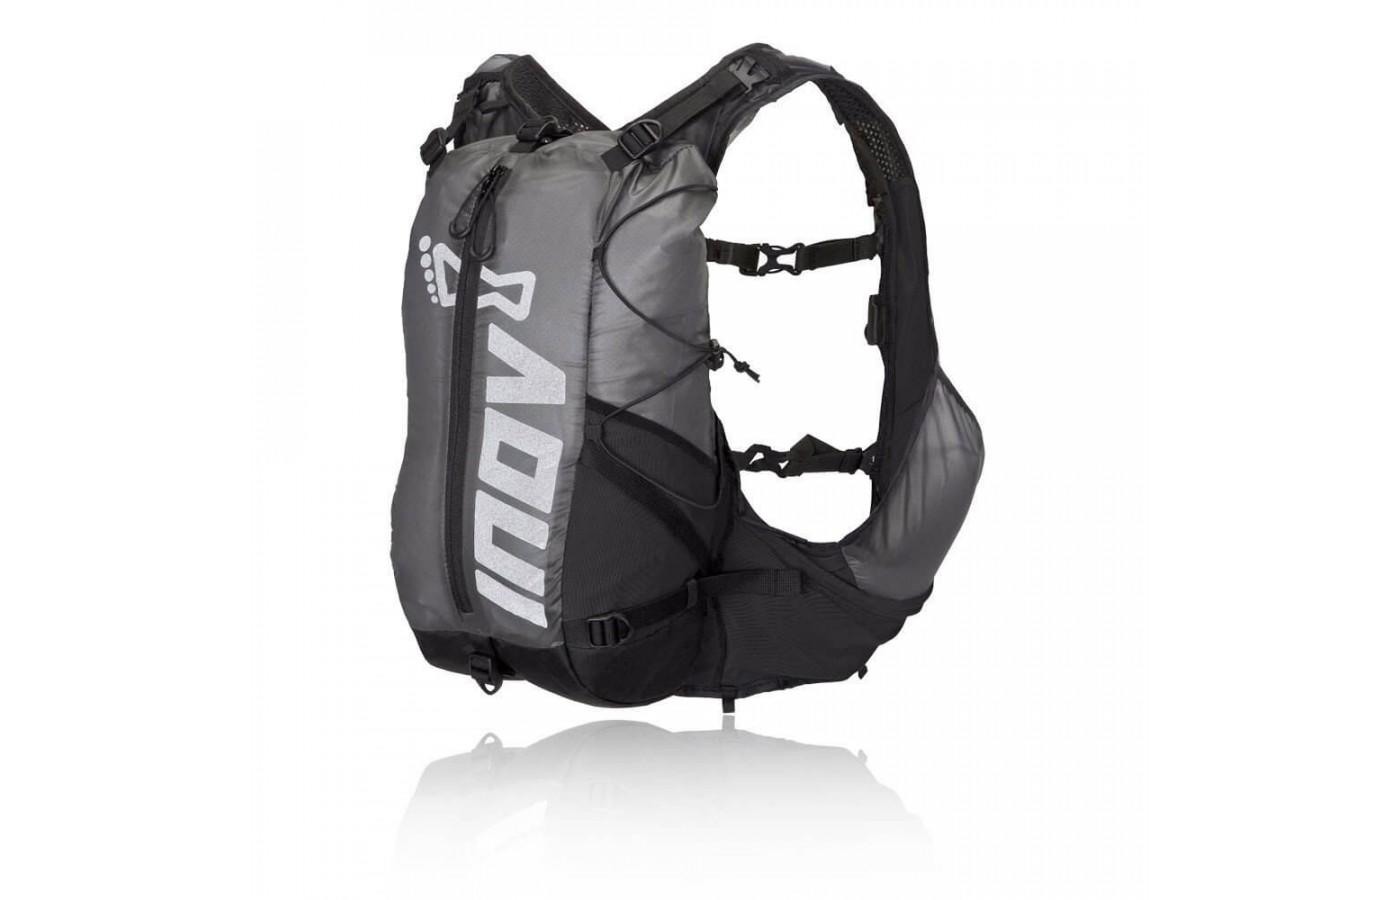 Inov provides runners with the option of attaching the 15 liter bag for longer adventures.